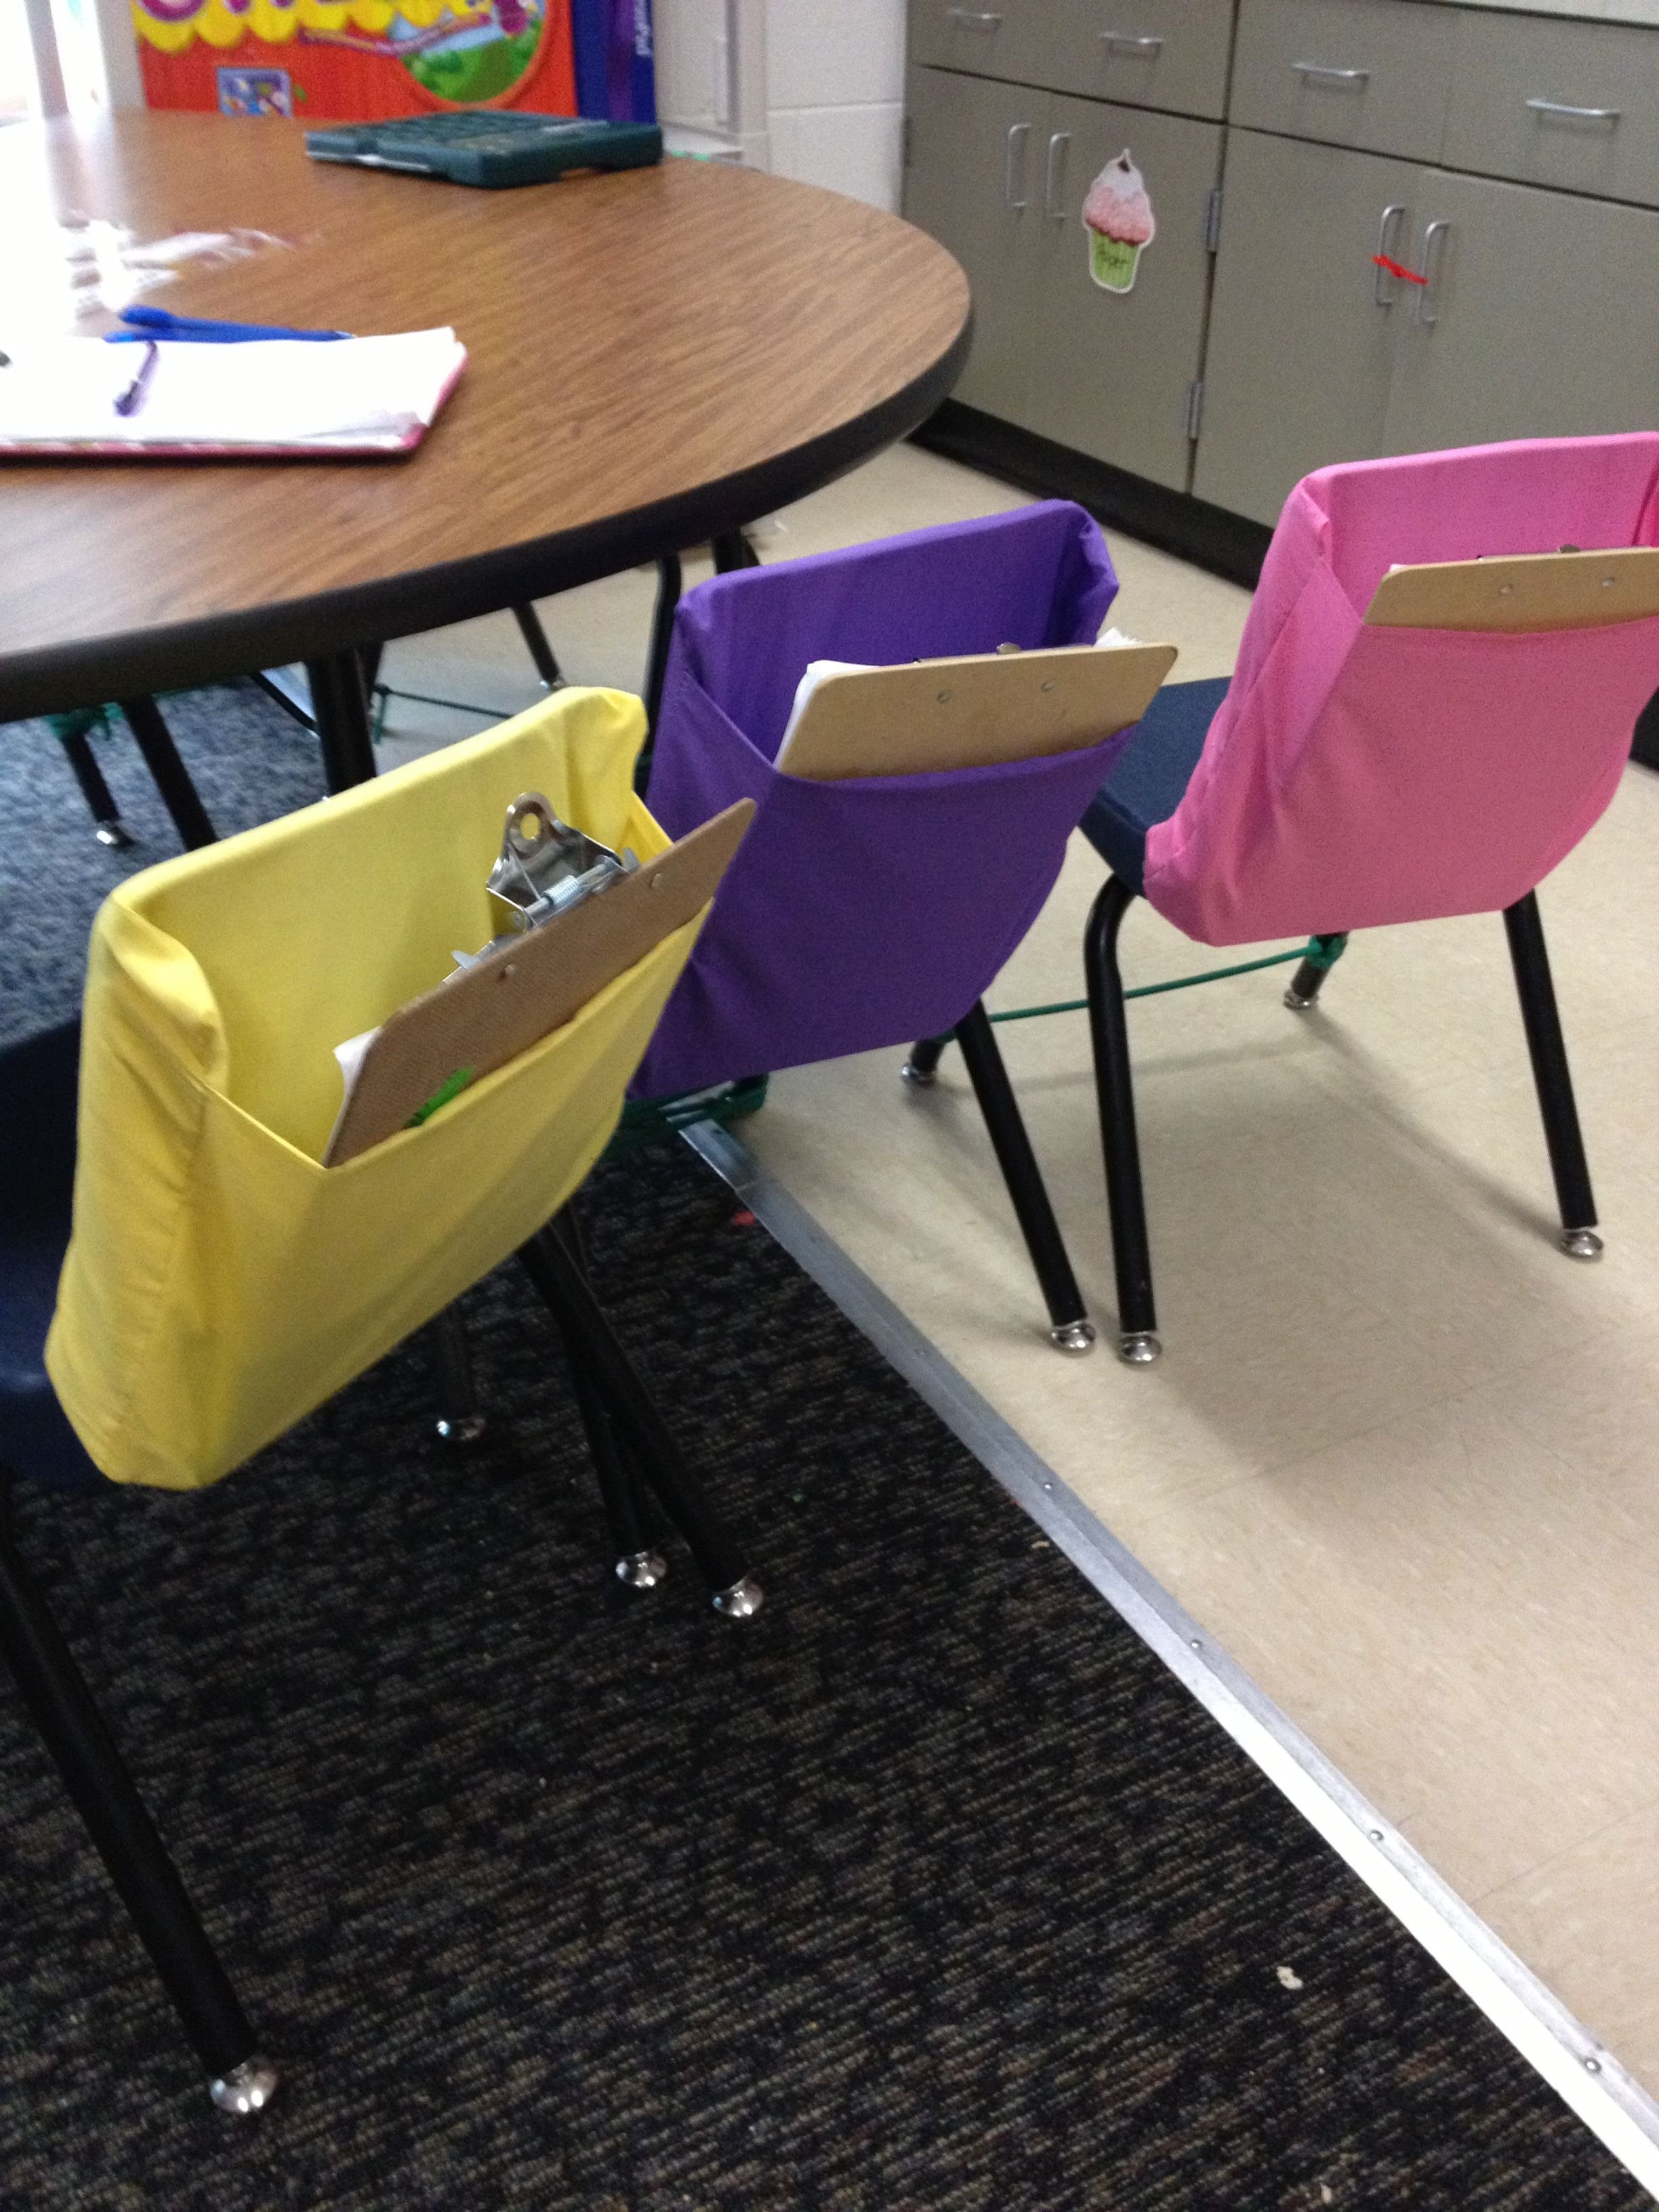 Diy Classroom Chair Covers Table And For Parties Easy Pockets Ms Layne 39s Room Pinterest